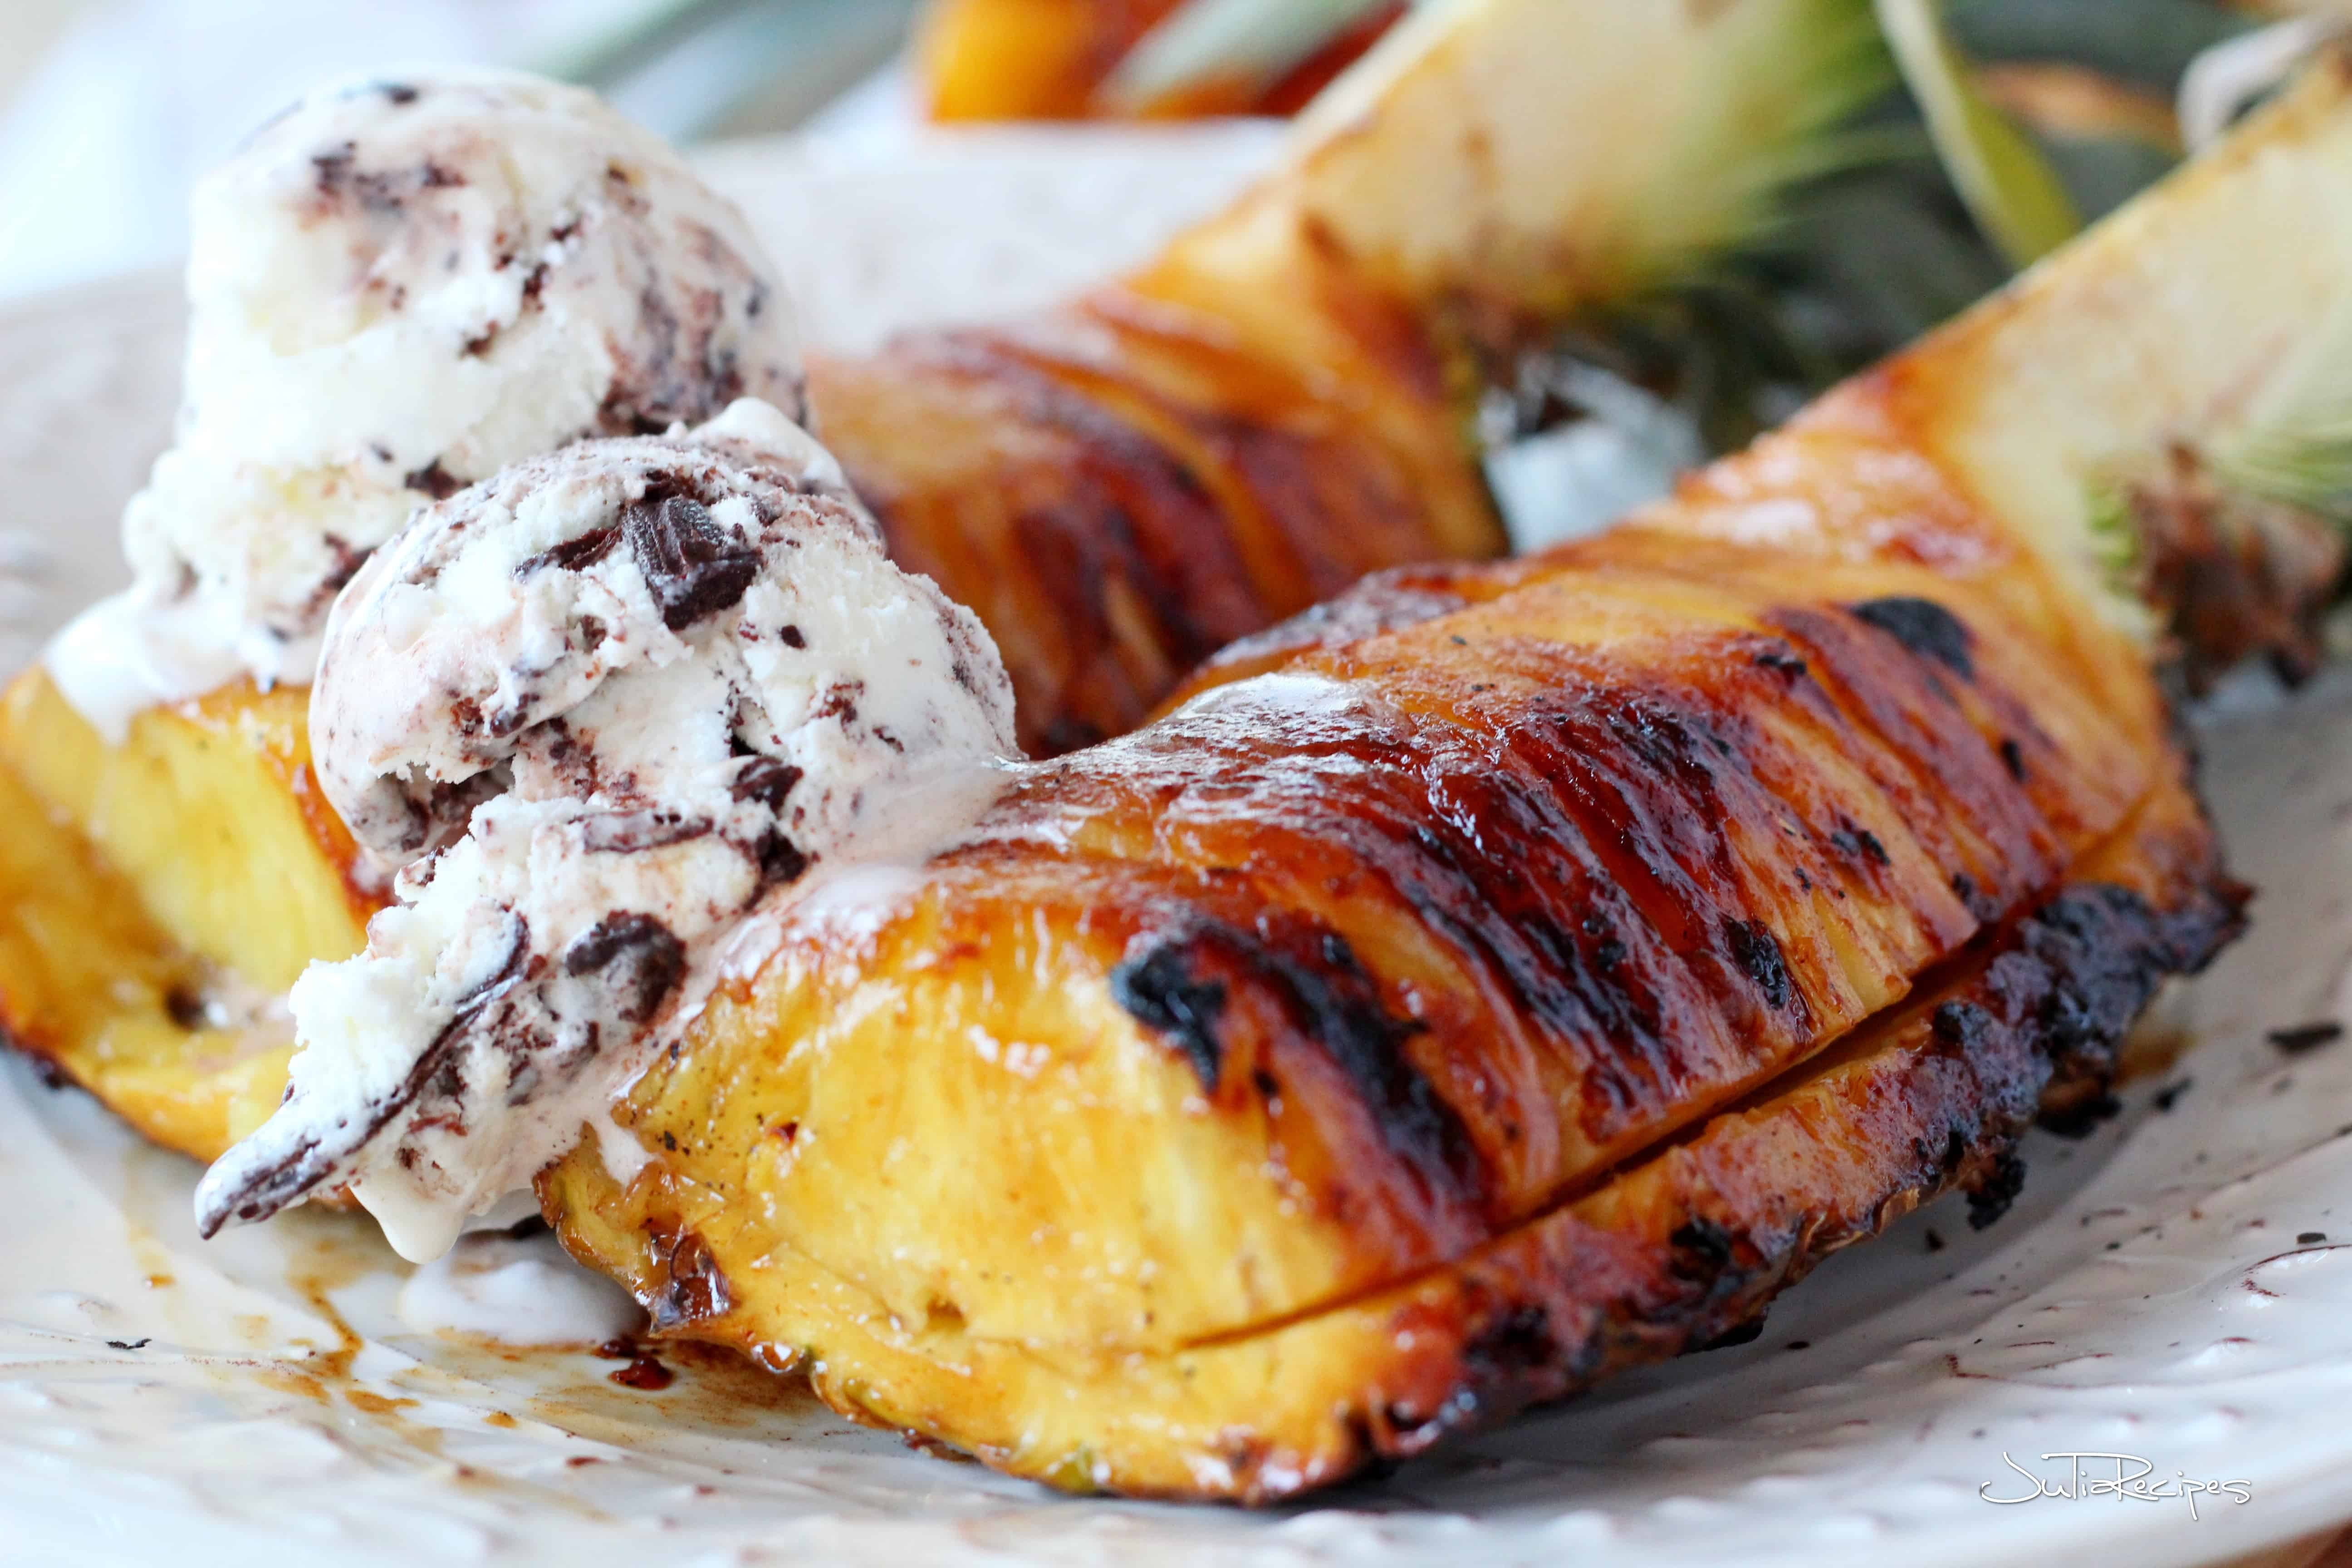 Grilled wedge of pineapple with scooped ice cream